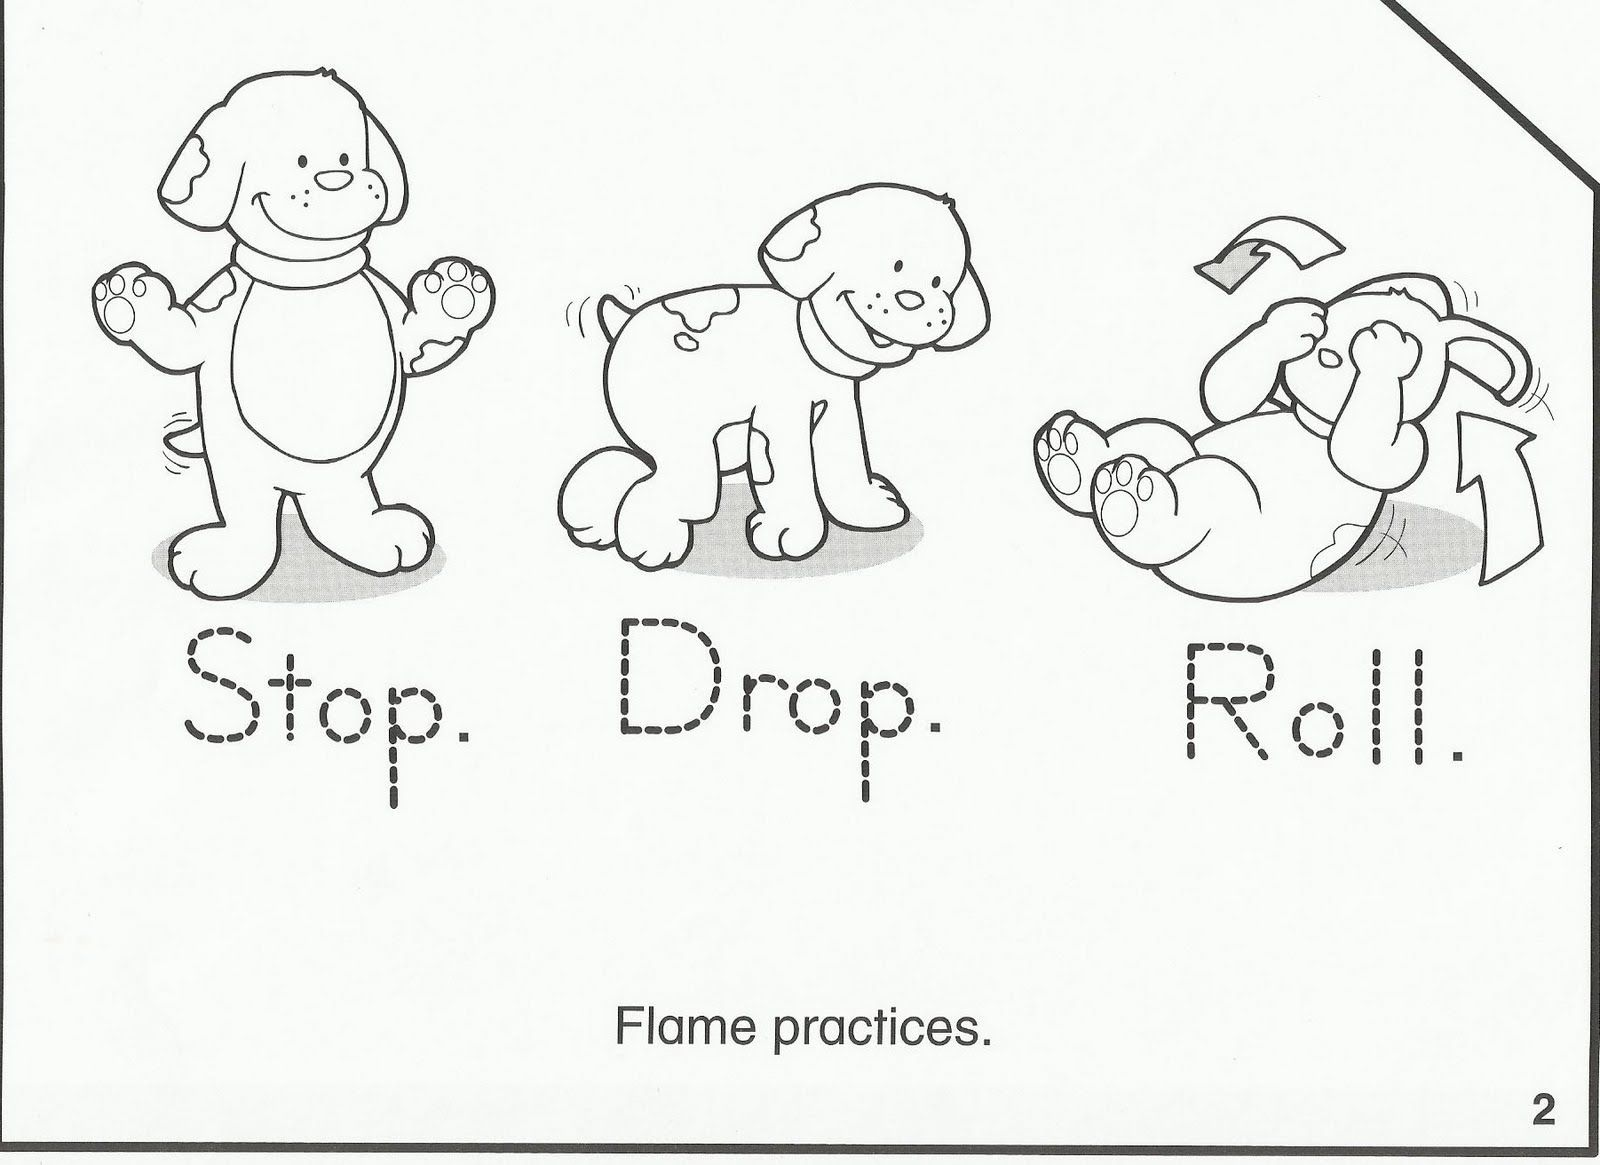 Squish Preschool Ideas Fire Safety With Images